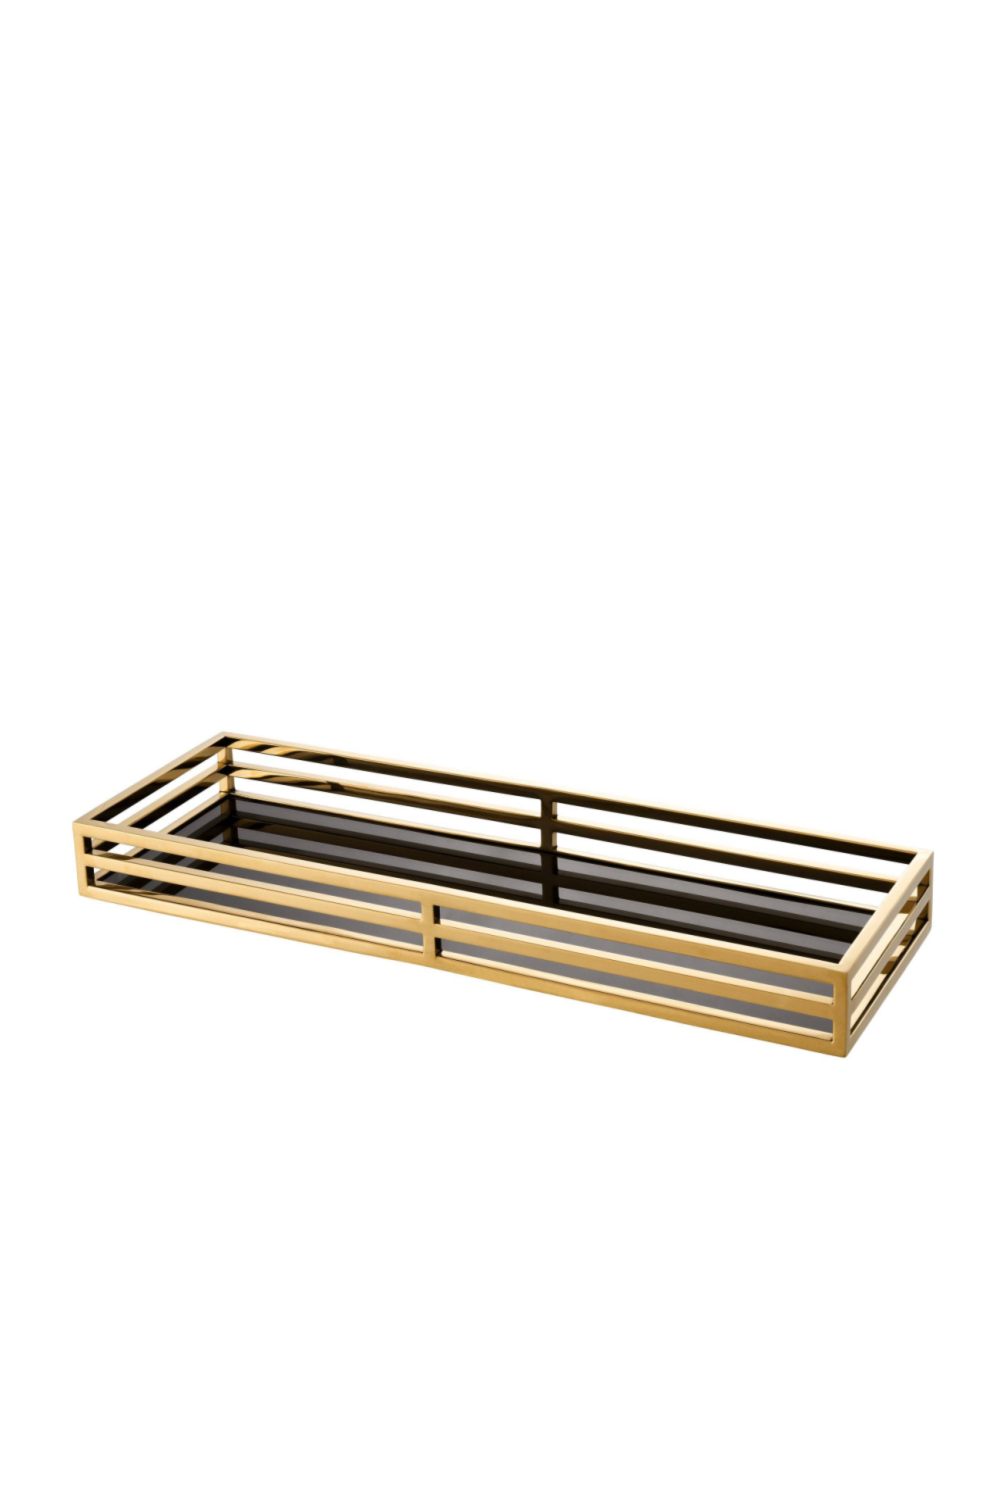 Black and Gold Serving Tray | Eichholtz Ersa | OROA Luxury Decor